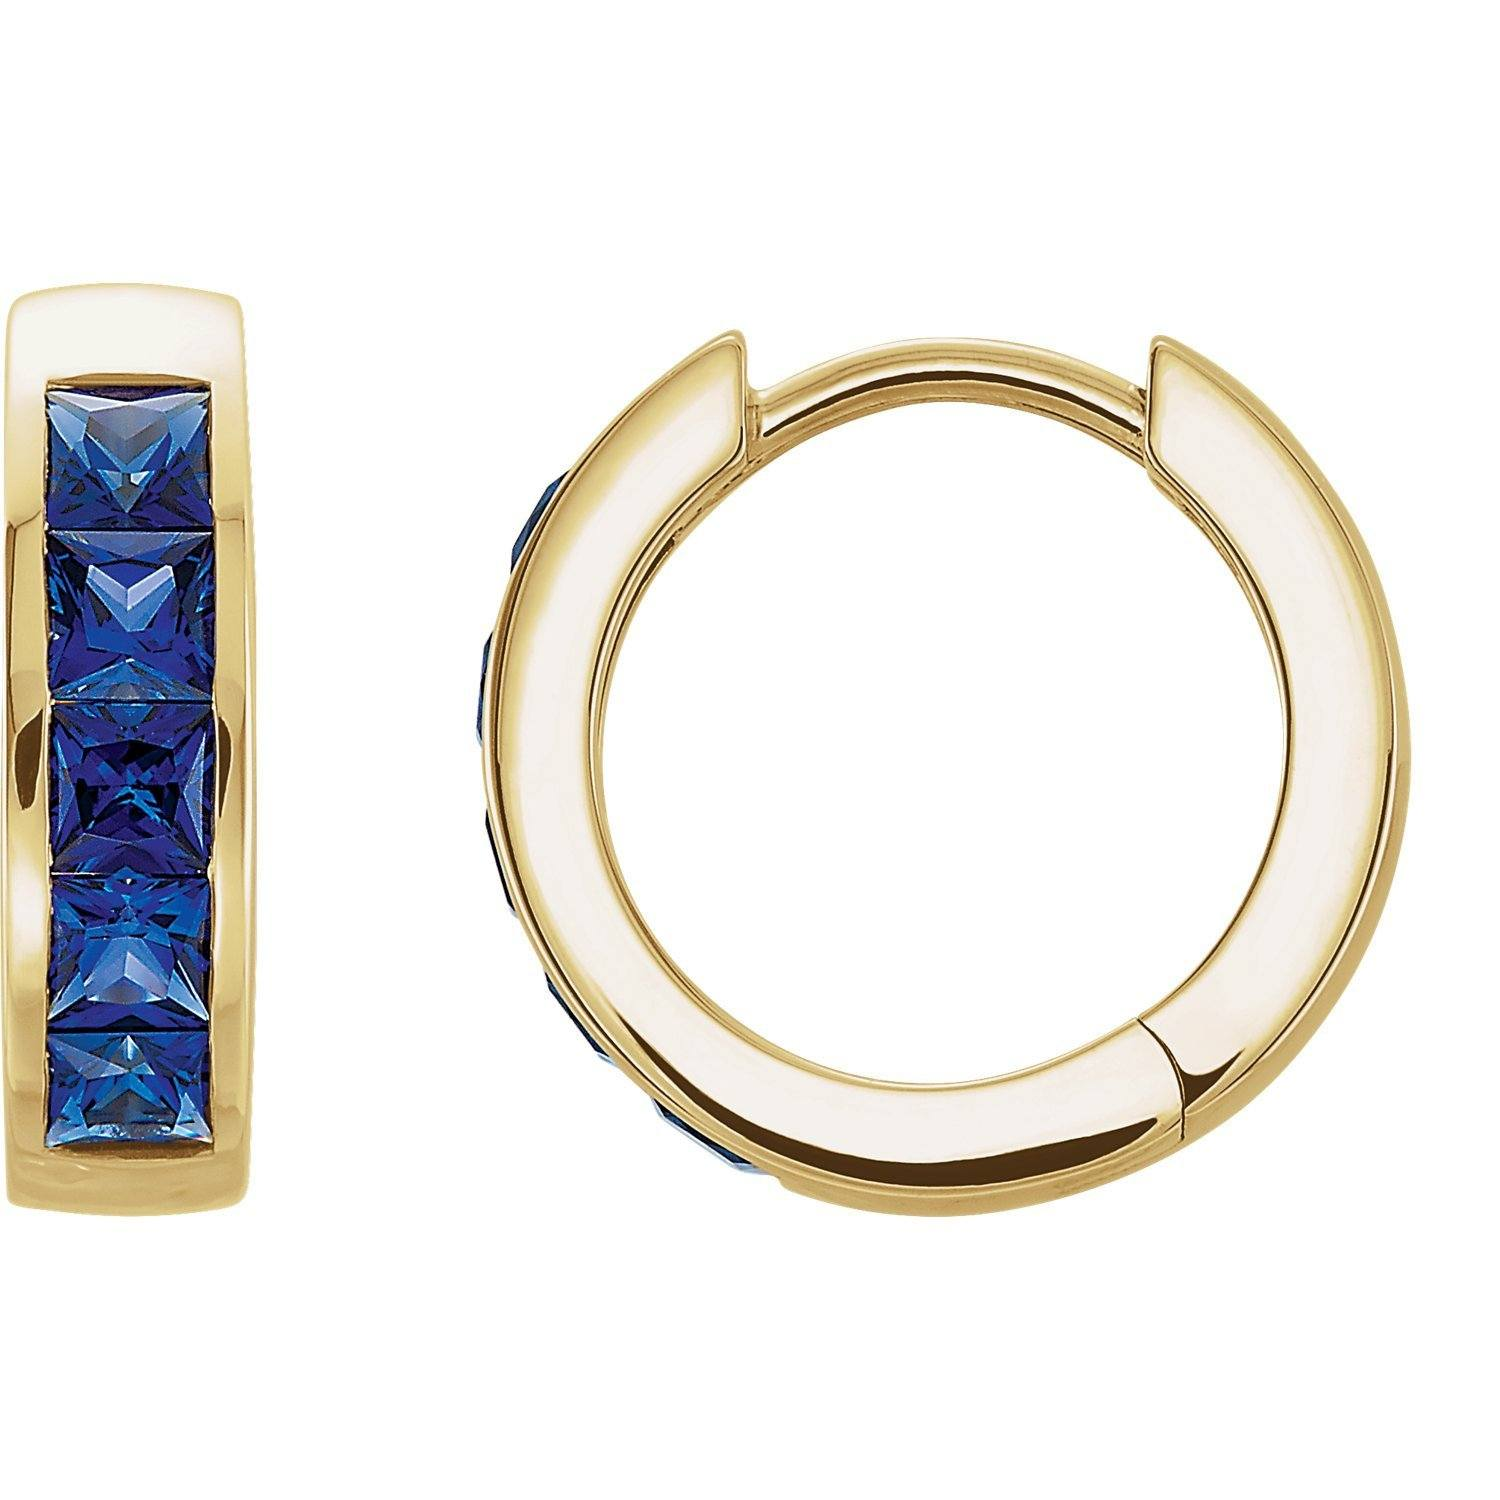 Lab-Grown Blue Sapphire Square-Cut Hoop Earrings